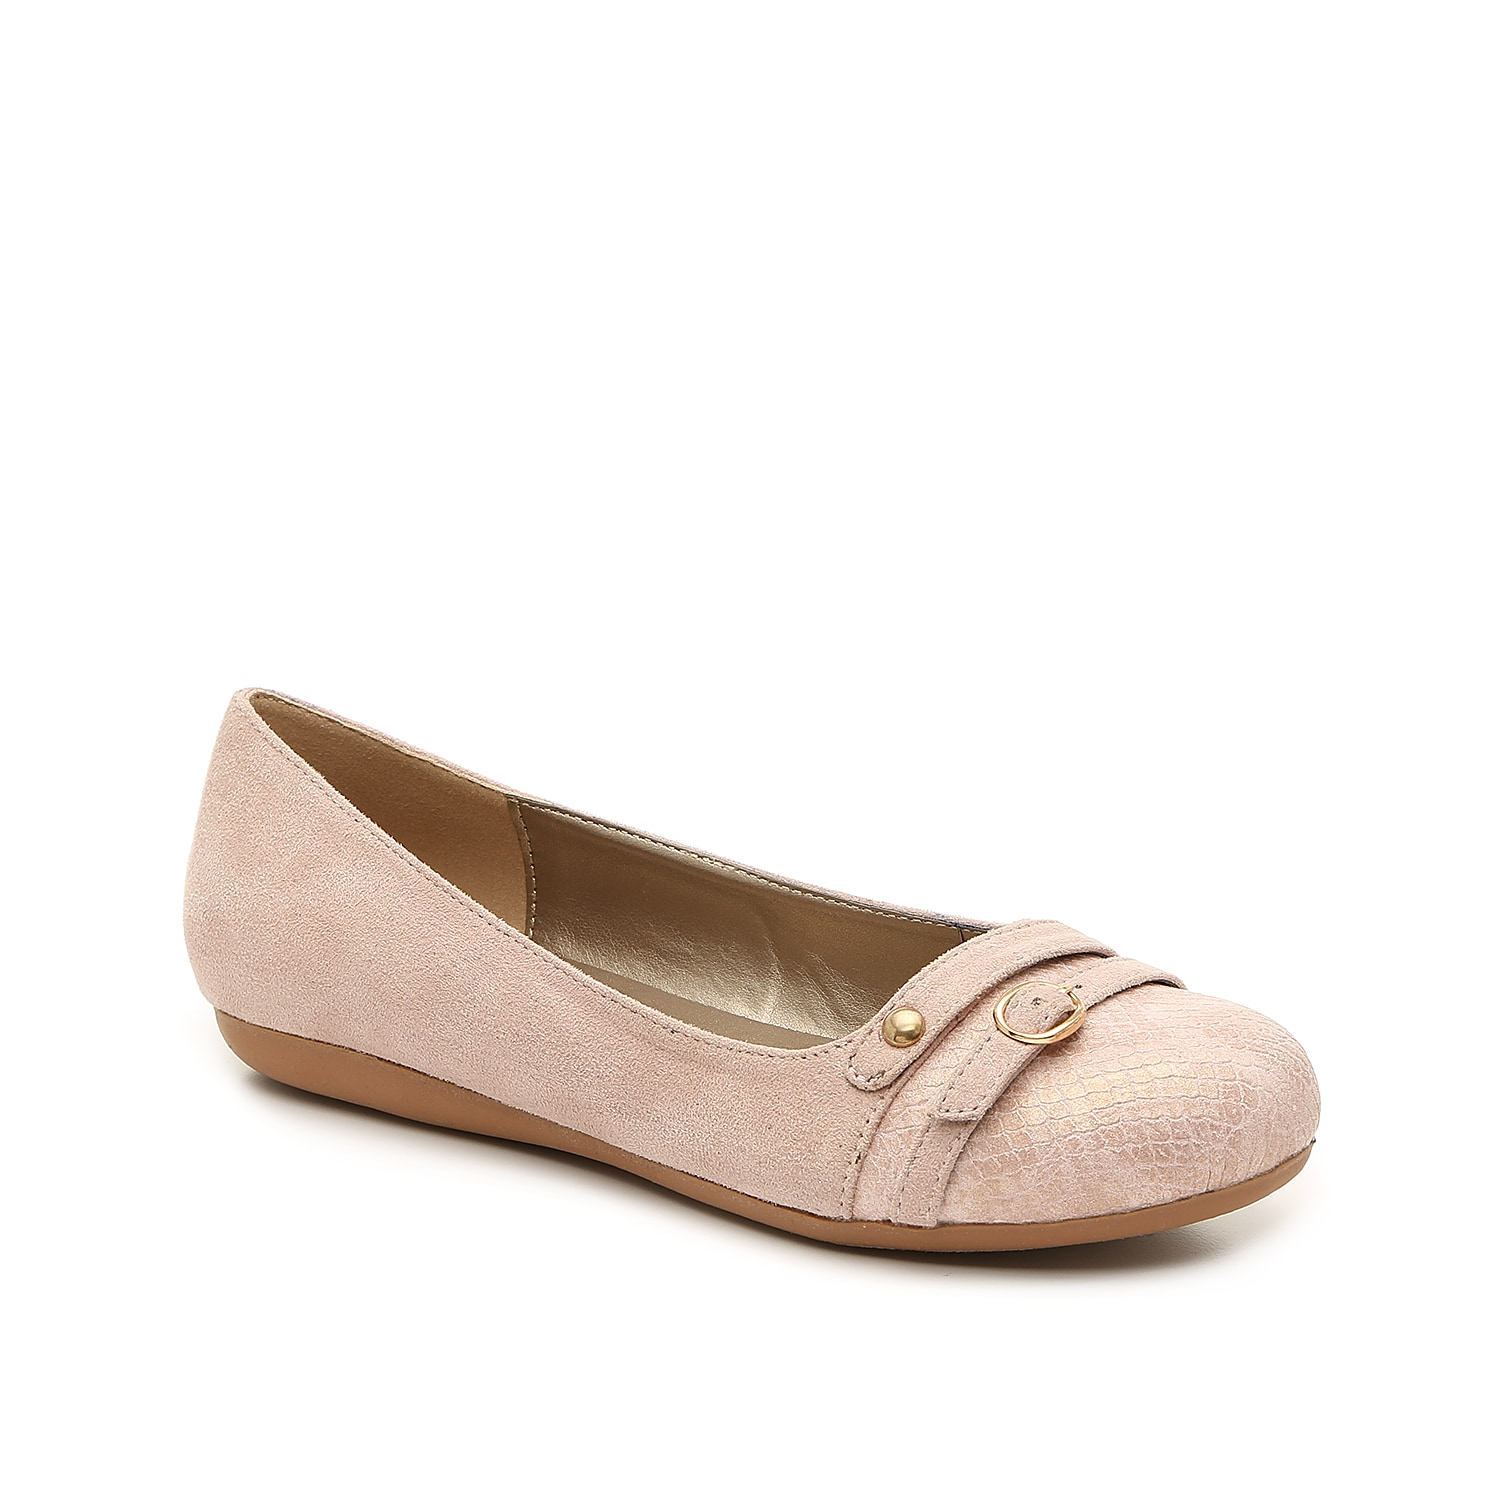 Bellini brings you the Bamboo flat for daylong comfort. This slip-on features a cushioned footbed and snake print accents for an eye-catching finishing touch!